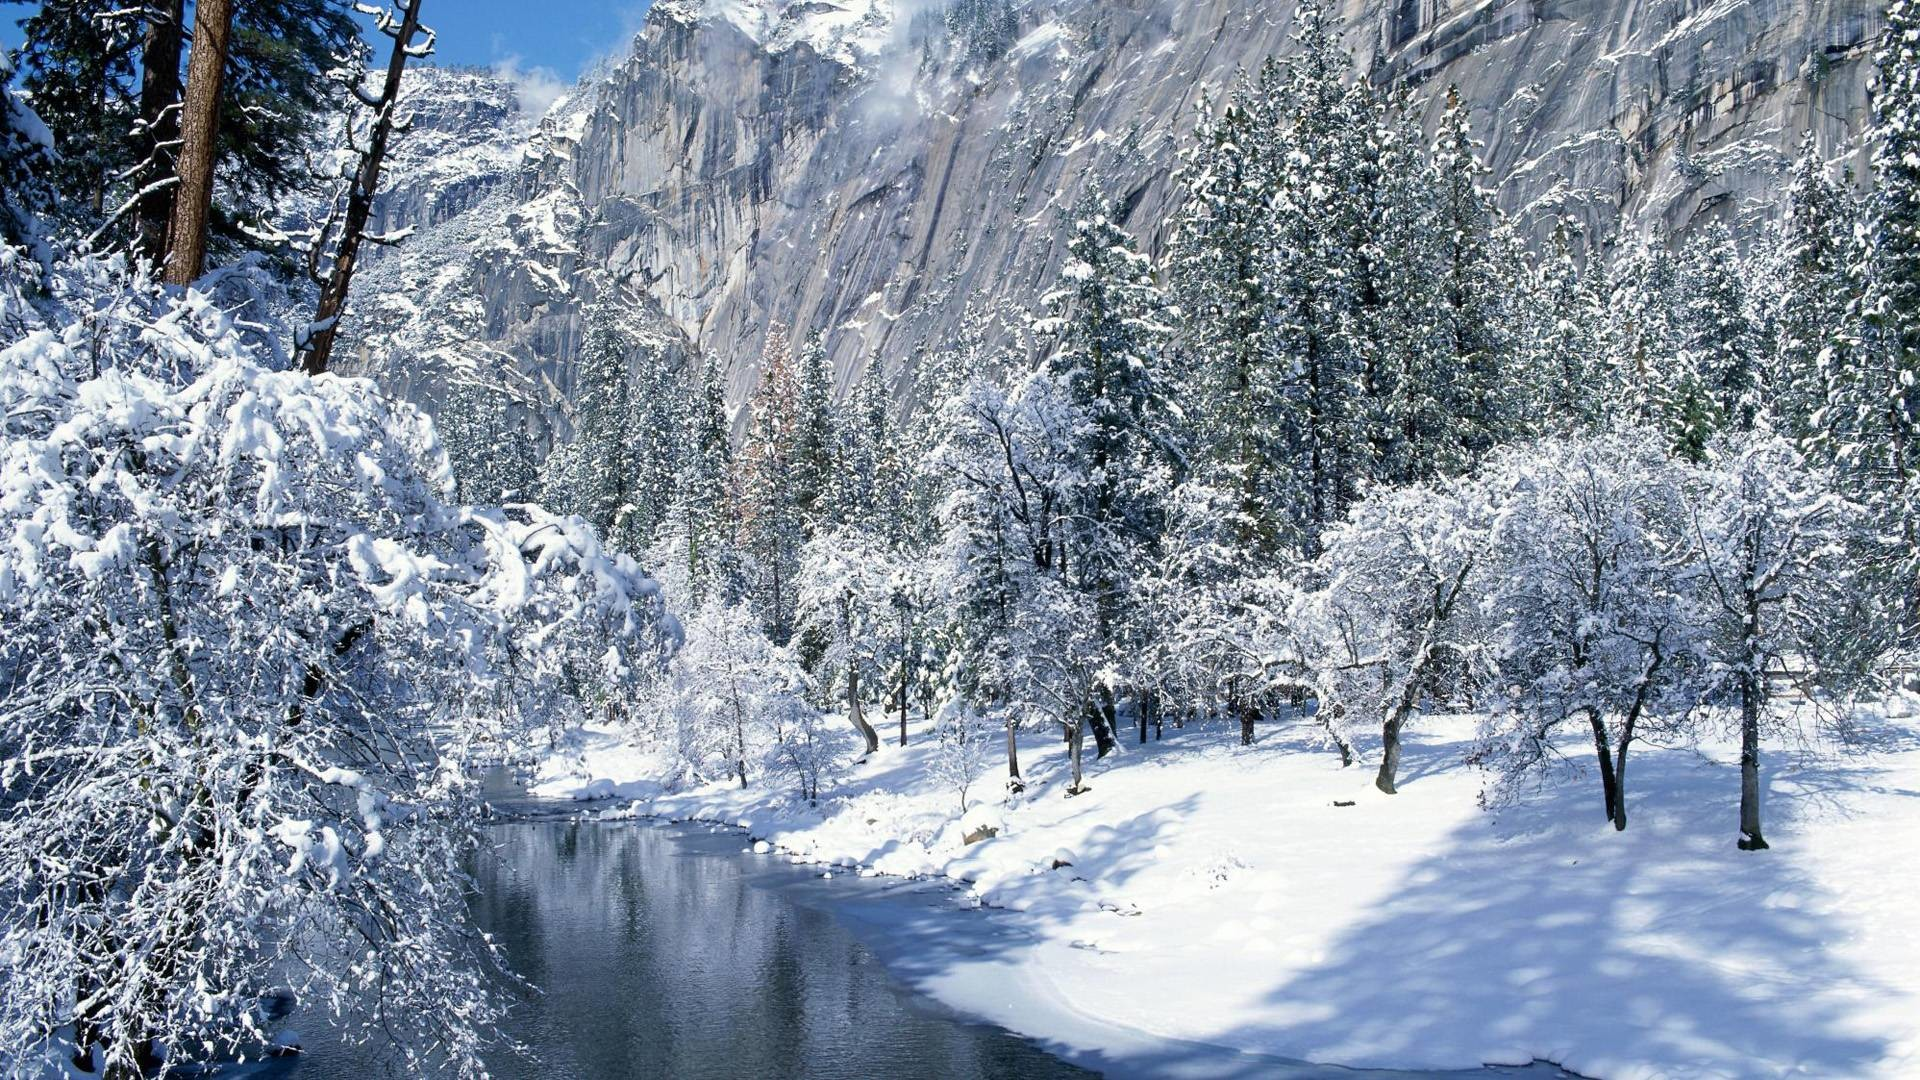 Winter Desktop Background Hd Images & Pictures – Becuo